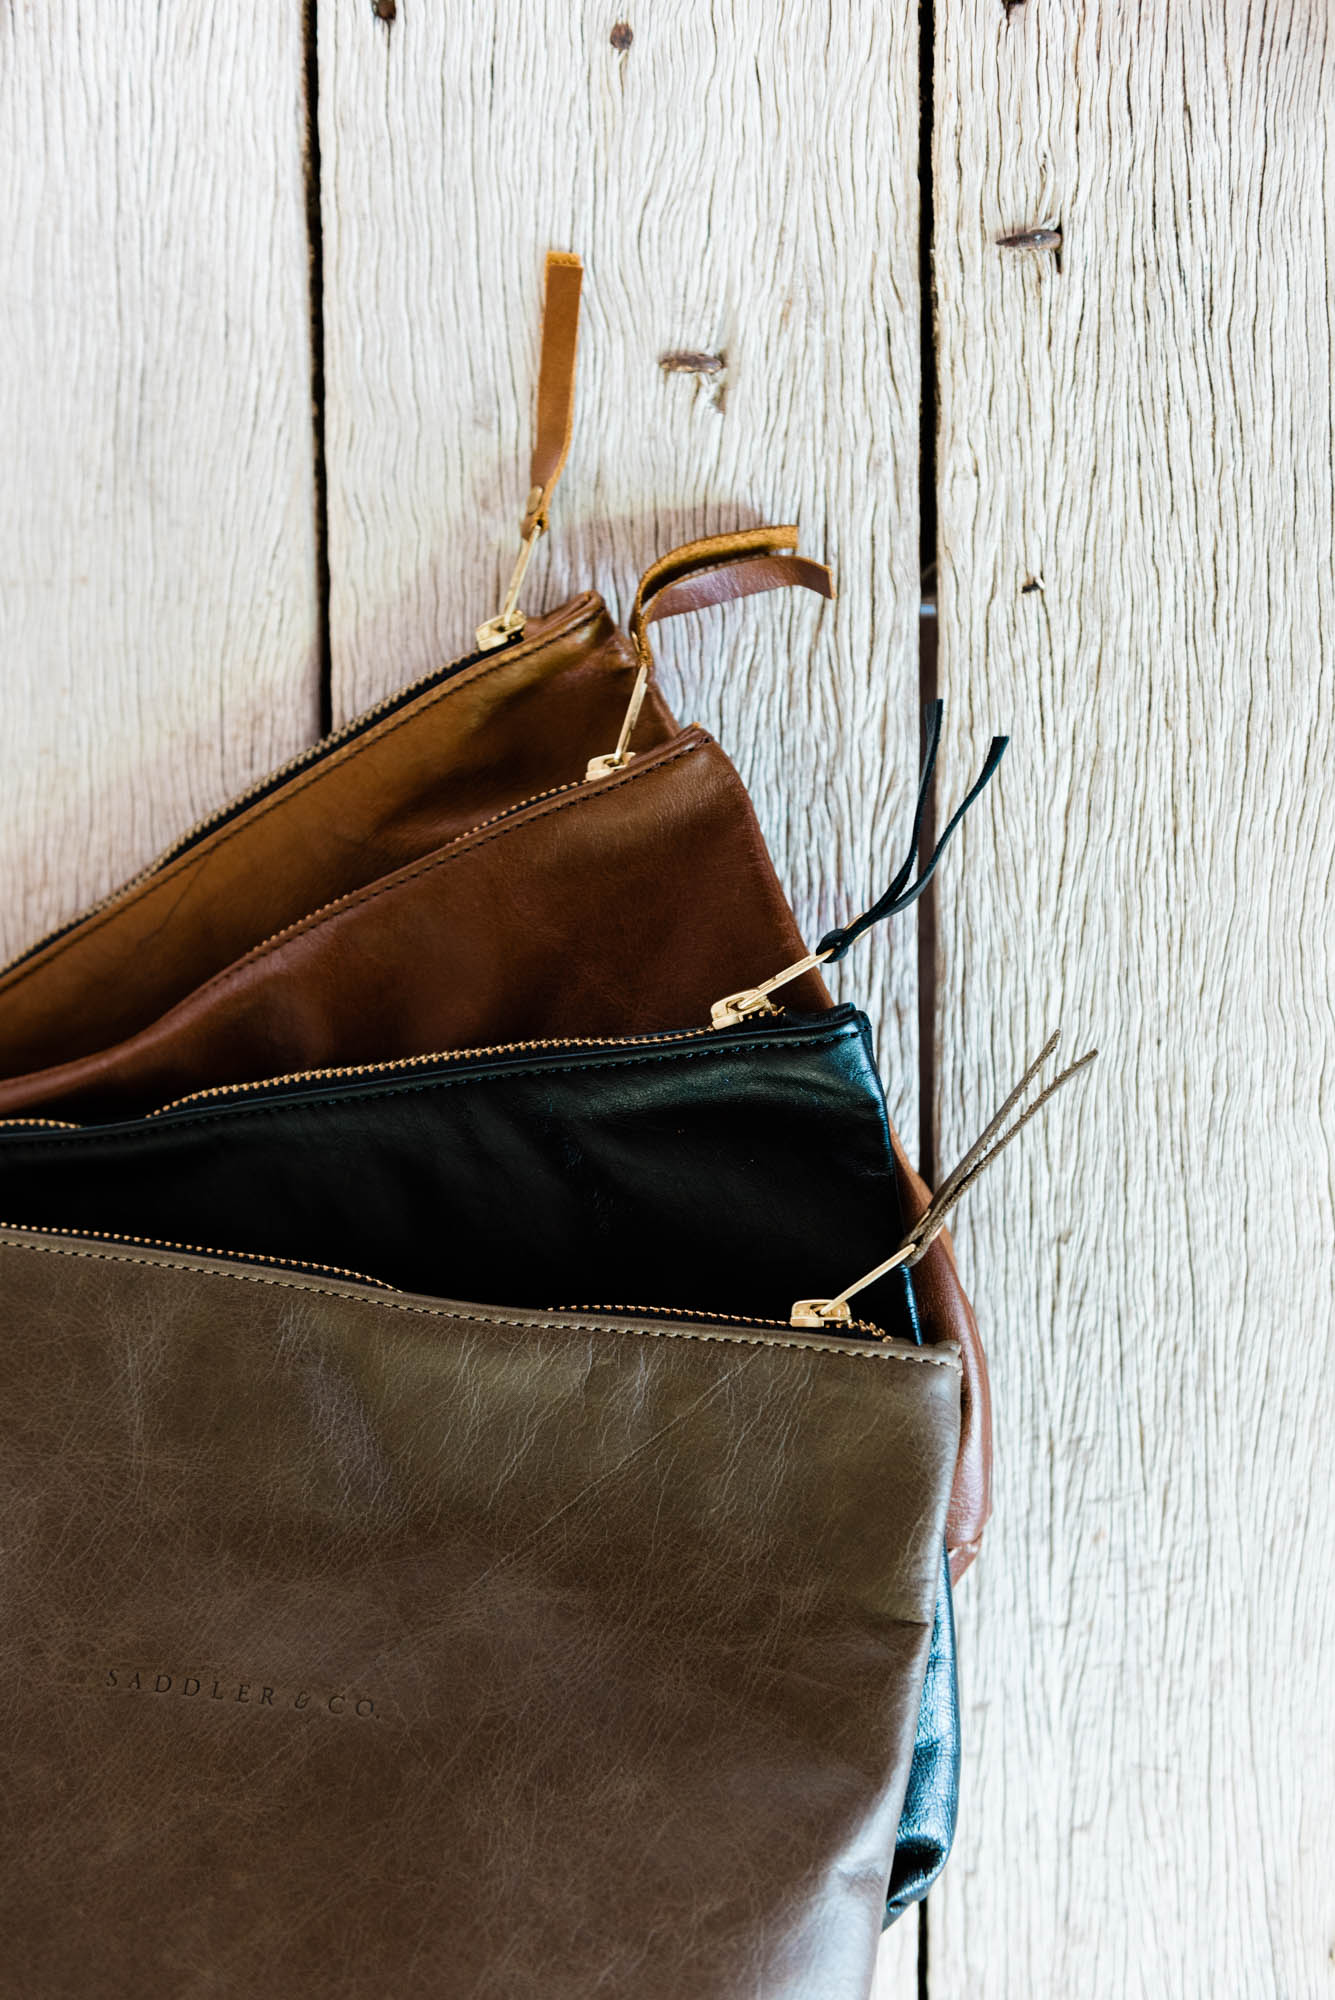 Web-hannah puechmari photography-albert and grace styling -saddler and co leather-9258.jpg